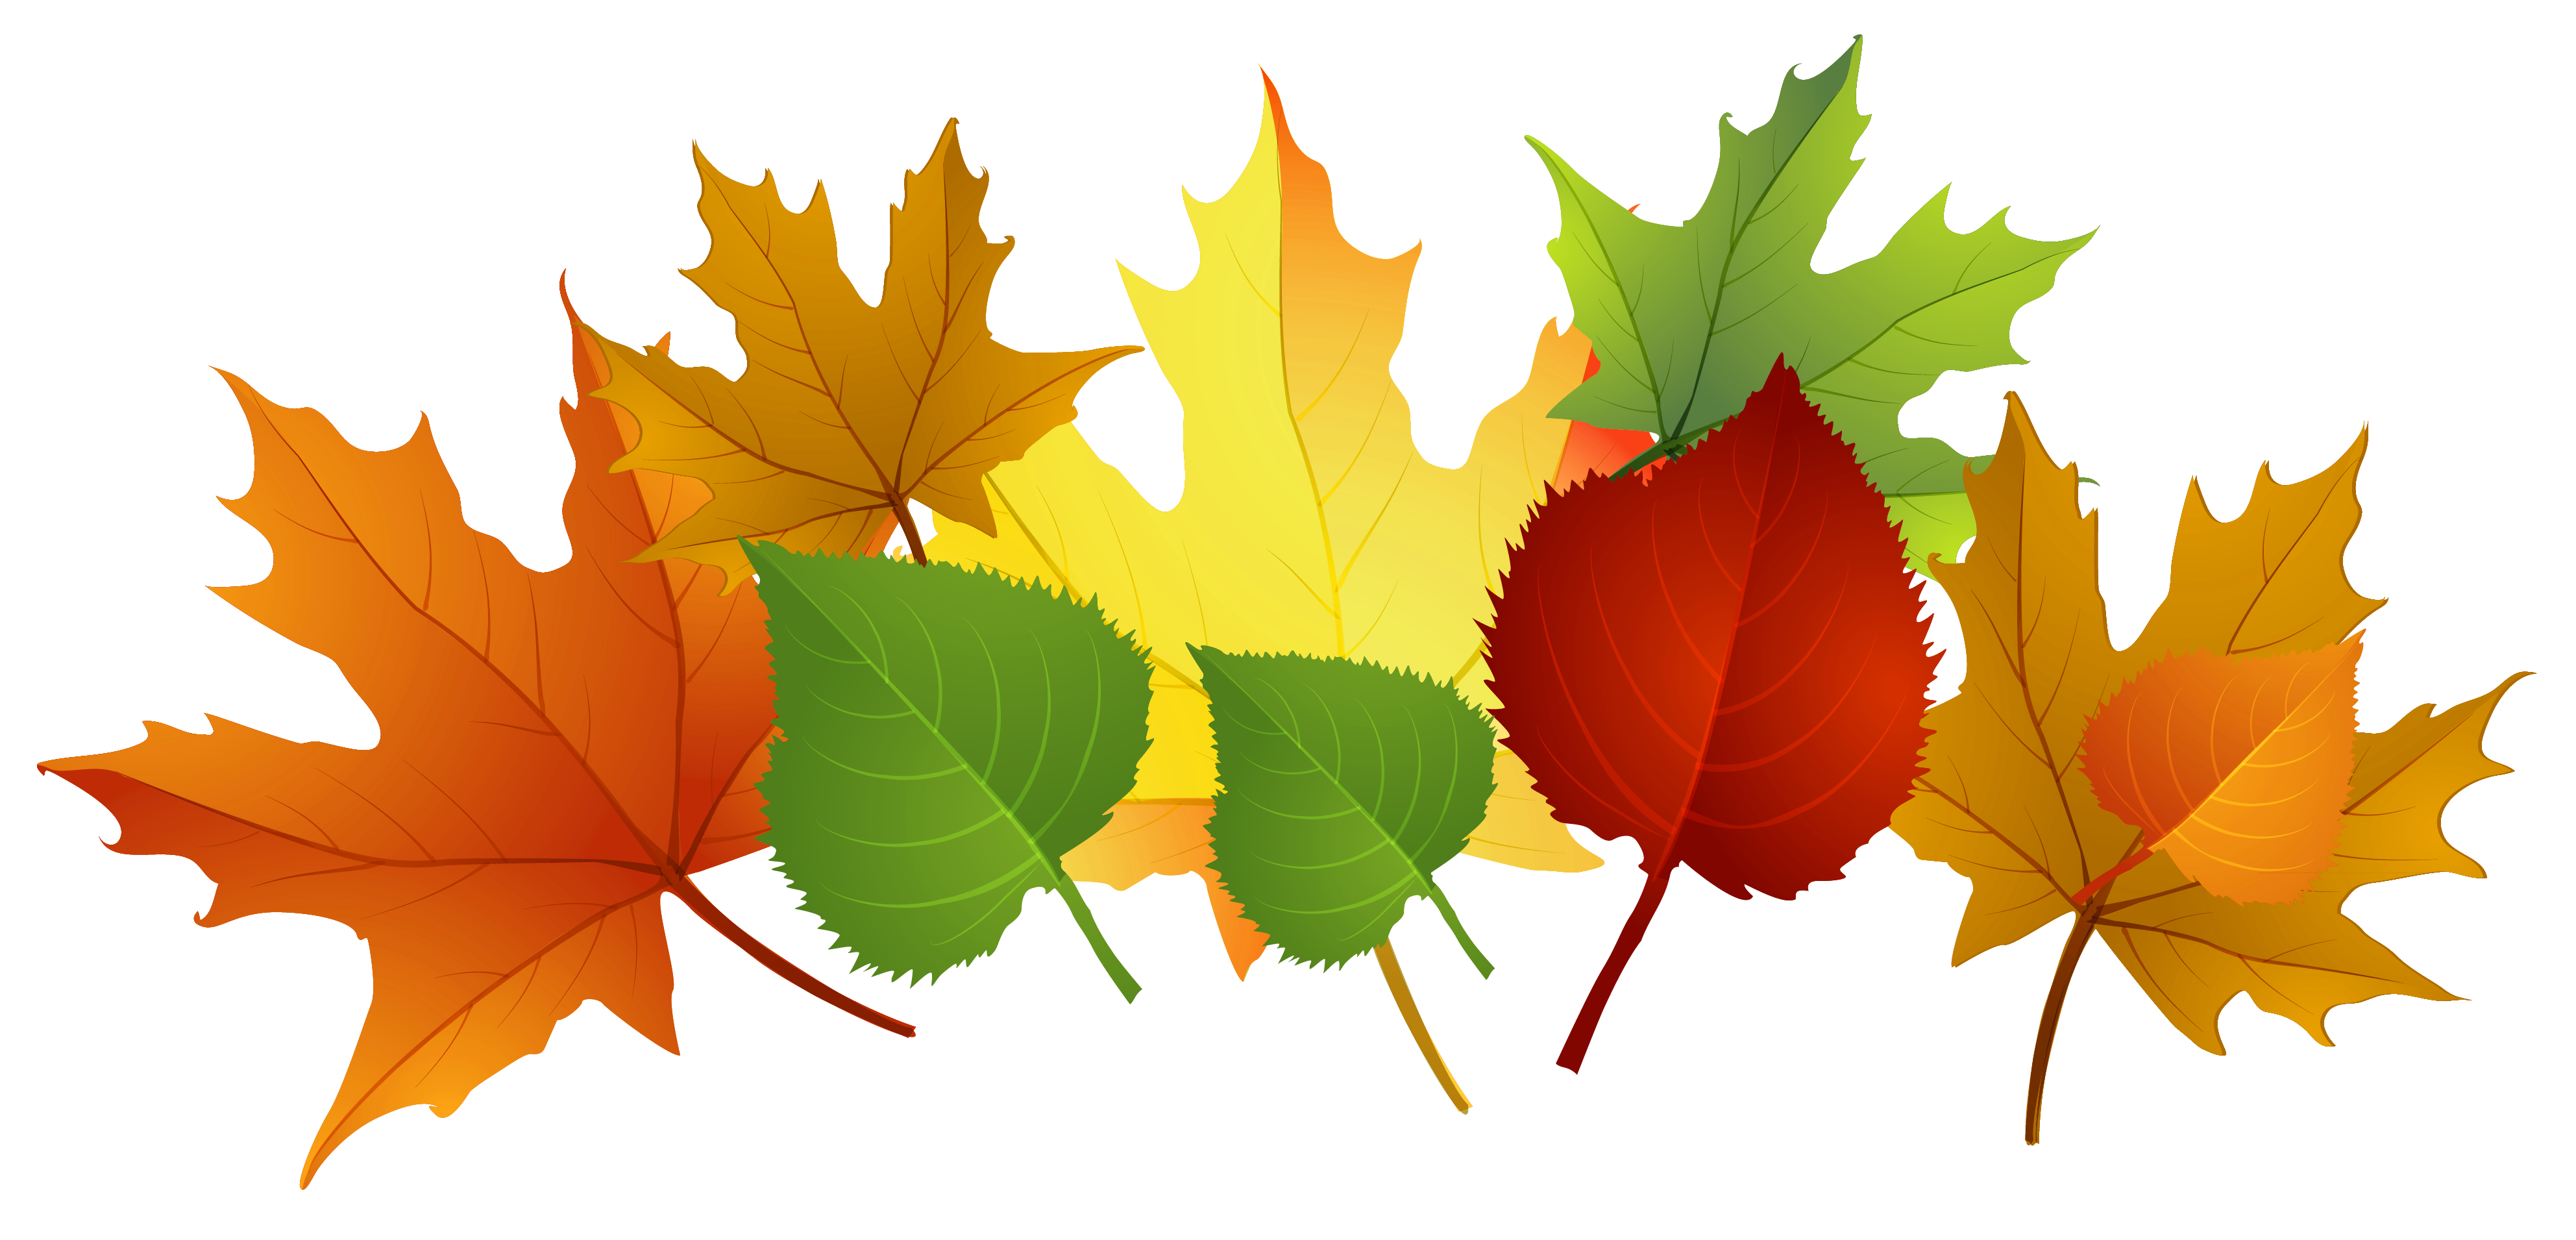 Fall Clip Art Images Free Cliparts Co-Fall Clip Art Images Free Cliparts Co-0